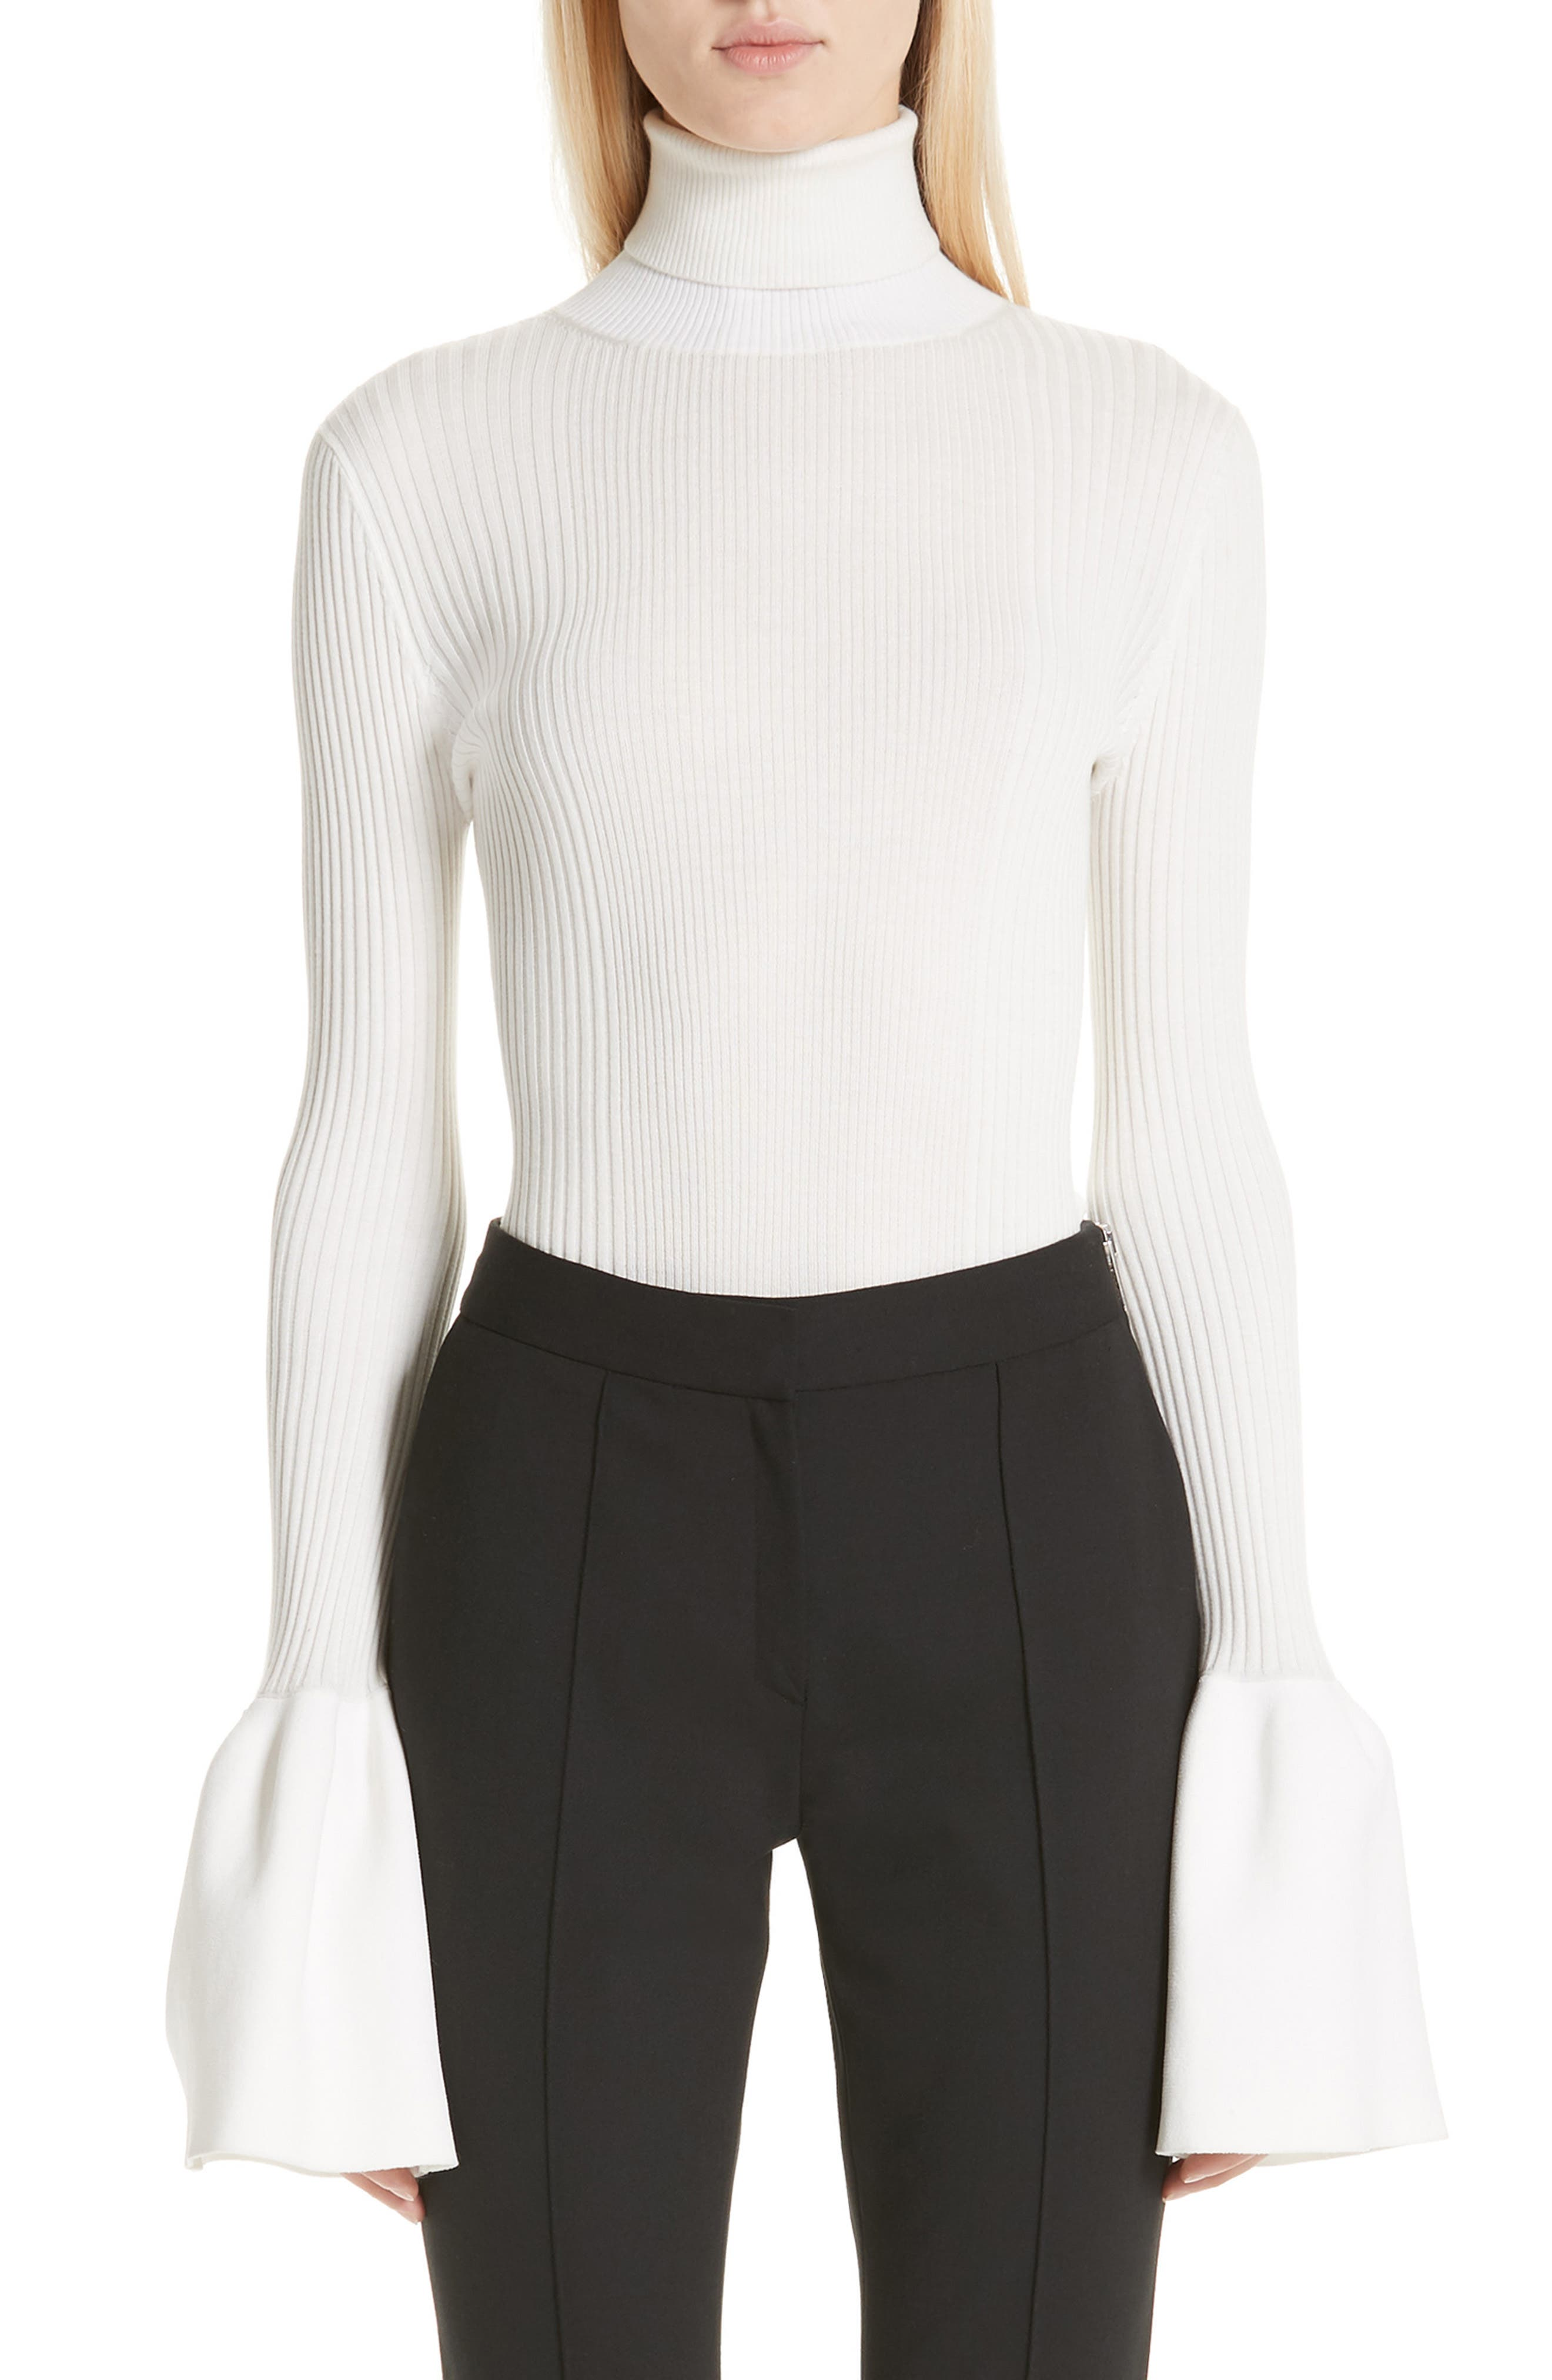 ca1229799f3454 Women's Alexander Wang Clothing | Nordstrom